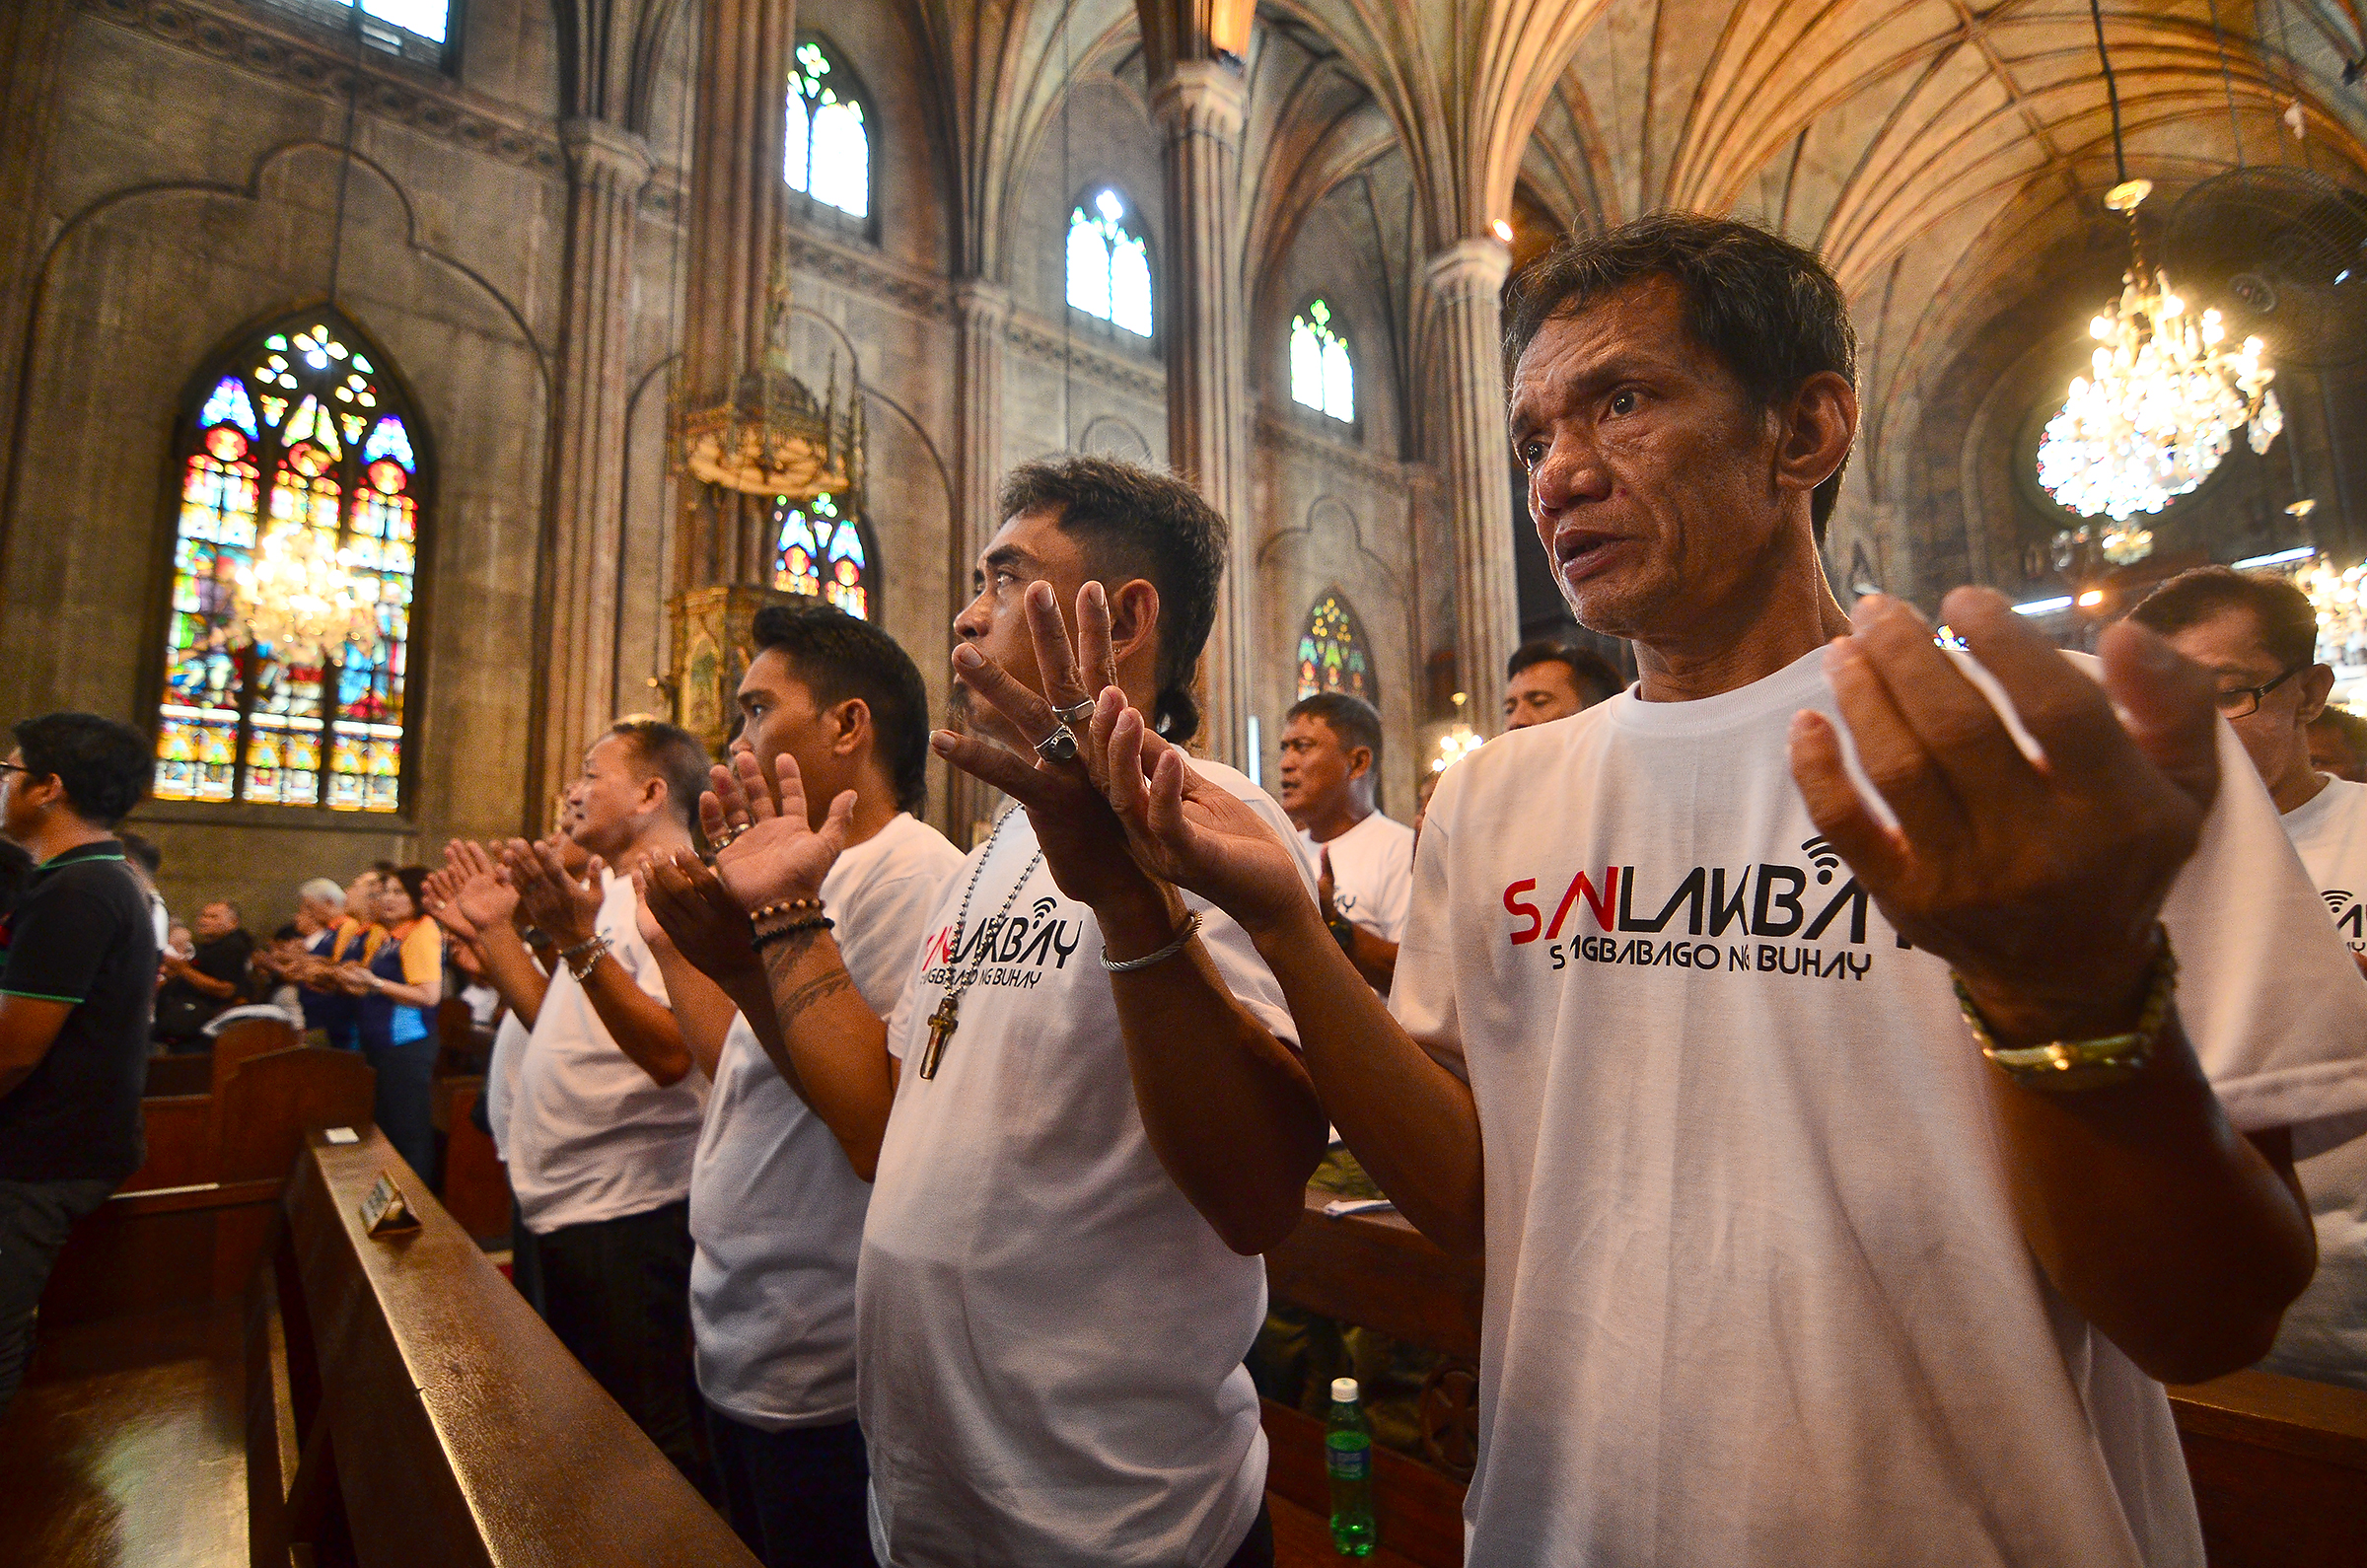 LORD'S PRAYER. Former drug dependents raise their hands as they sing the Lord's Prayer. Photo by Maria Tan